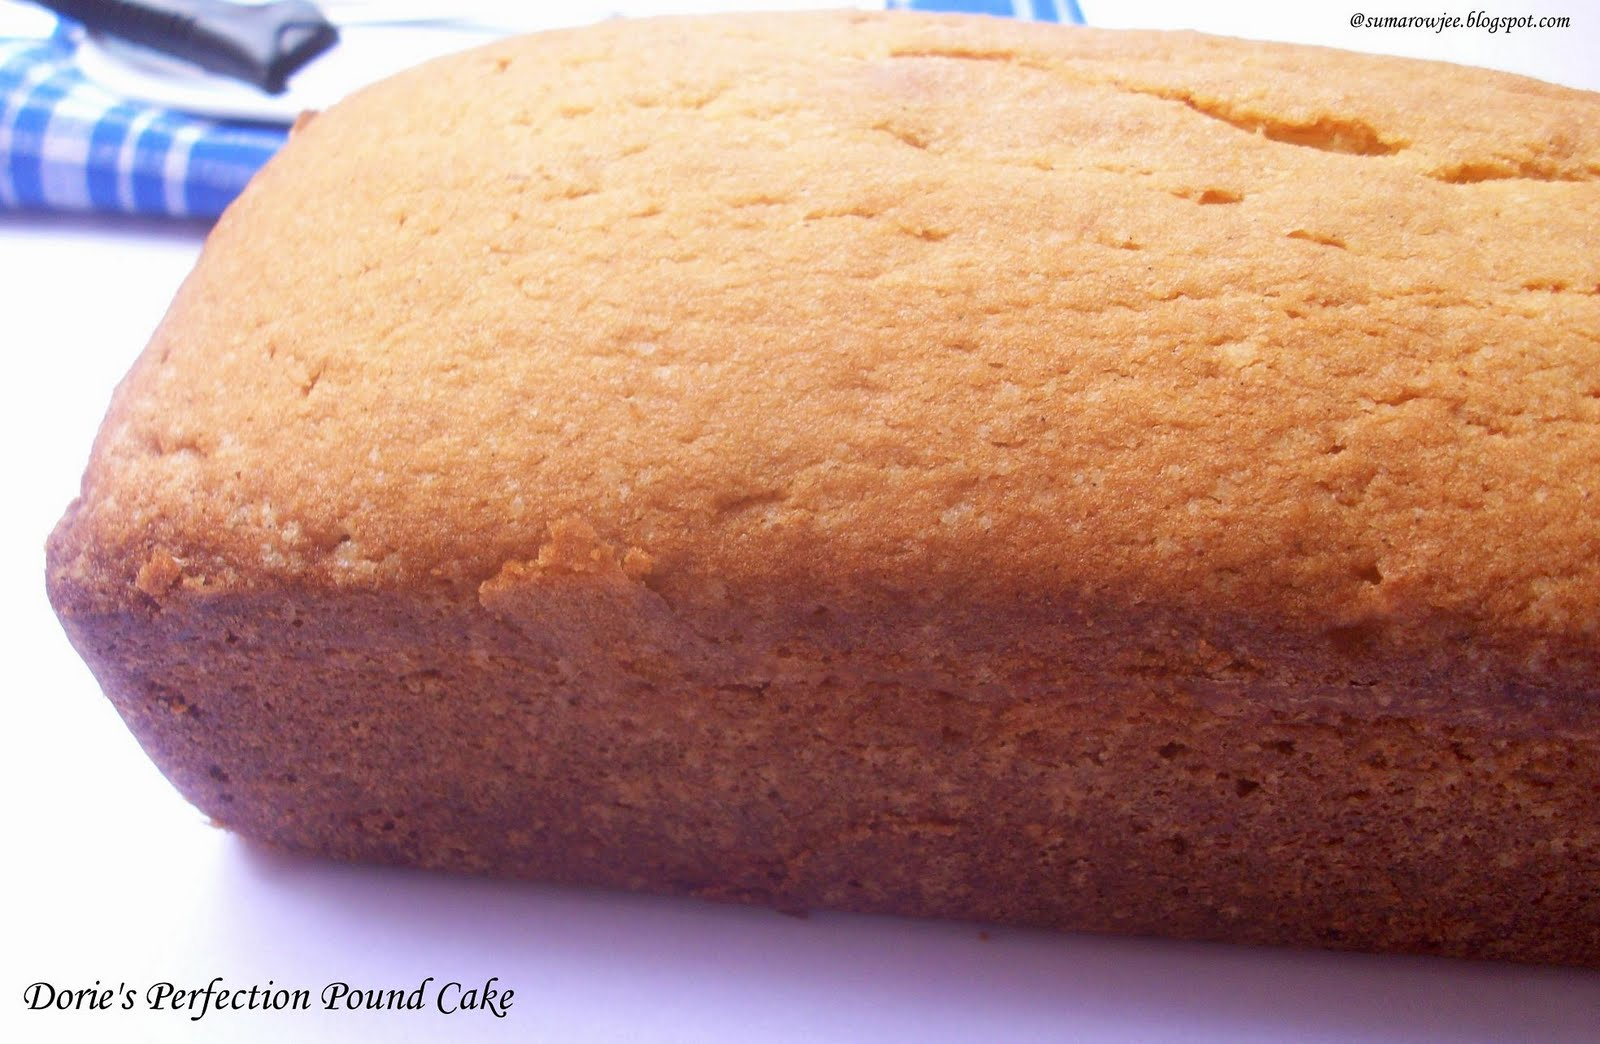 Cakes & More: Dorie Greenspan's Perfection Pound Cake